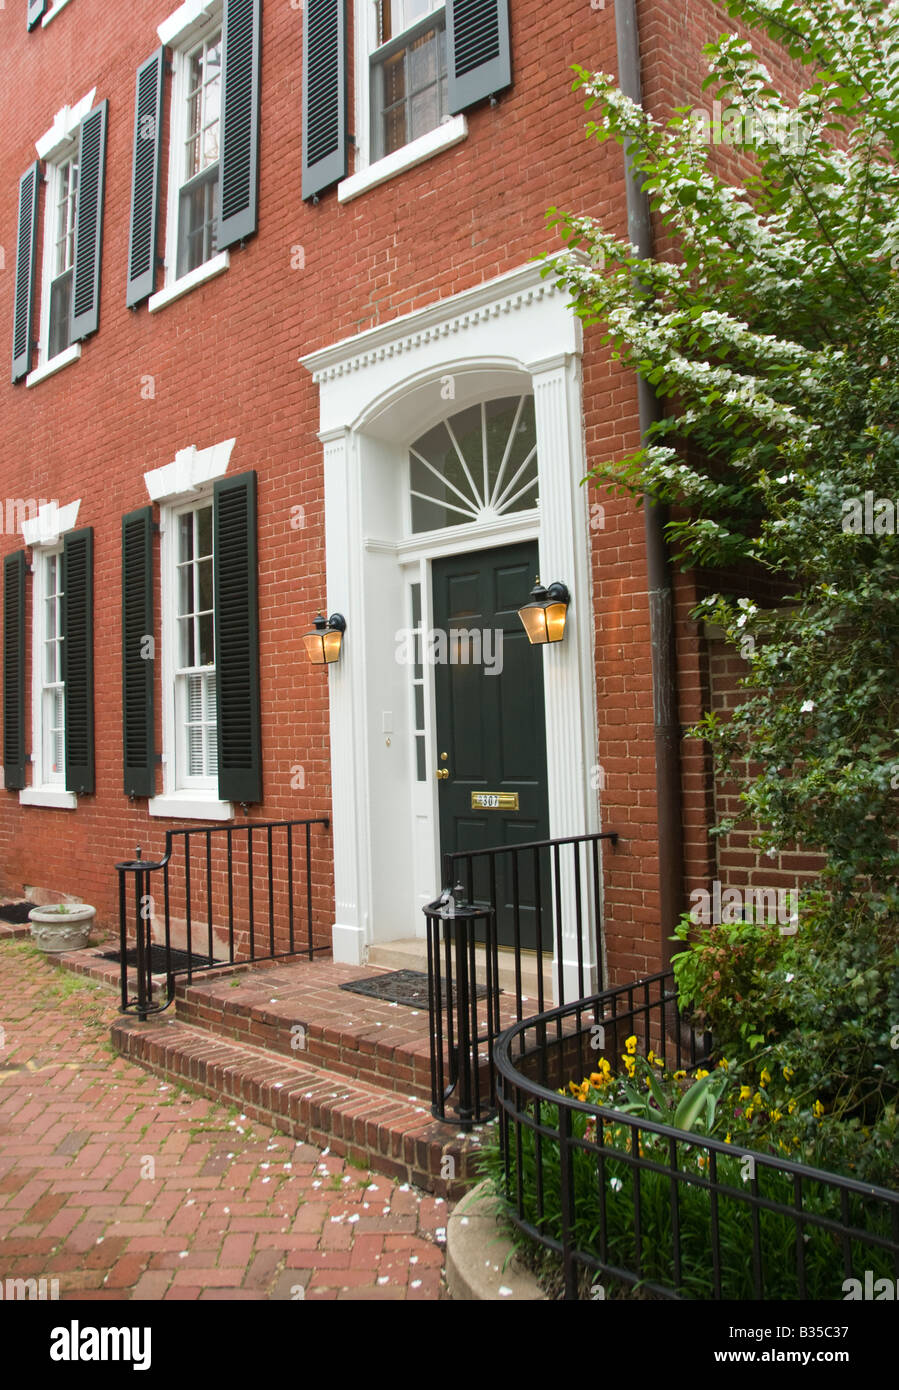 Marbury House, historic brick home of John and Jacqueline Kennedy, in Georgetown, Washington, DC. - Stock Image